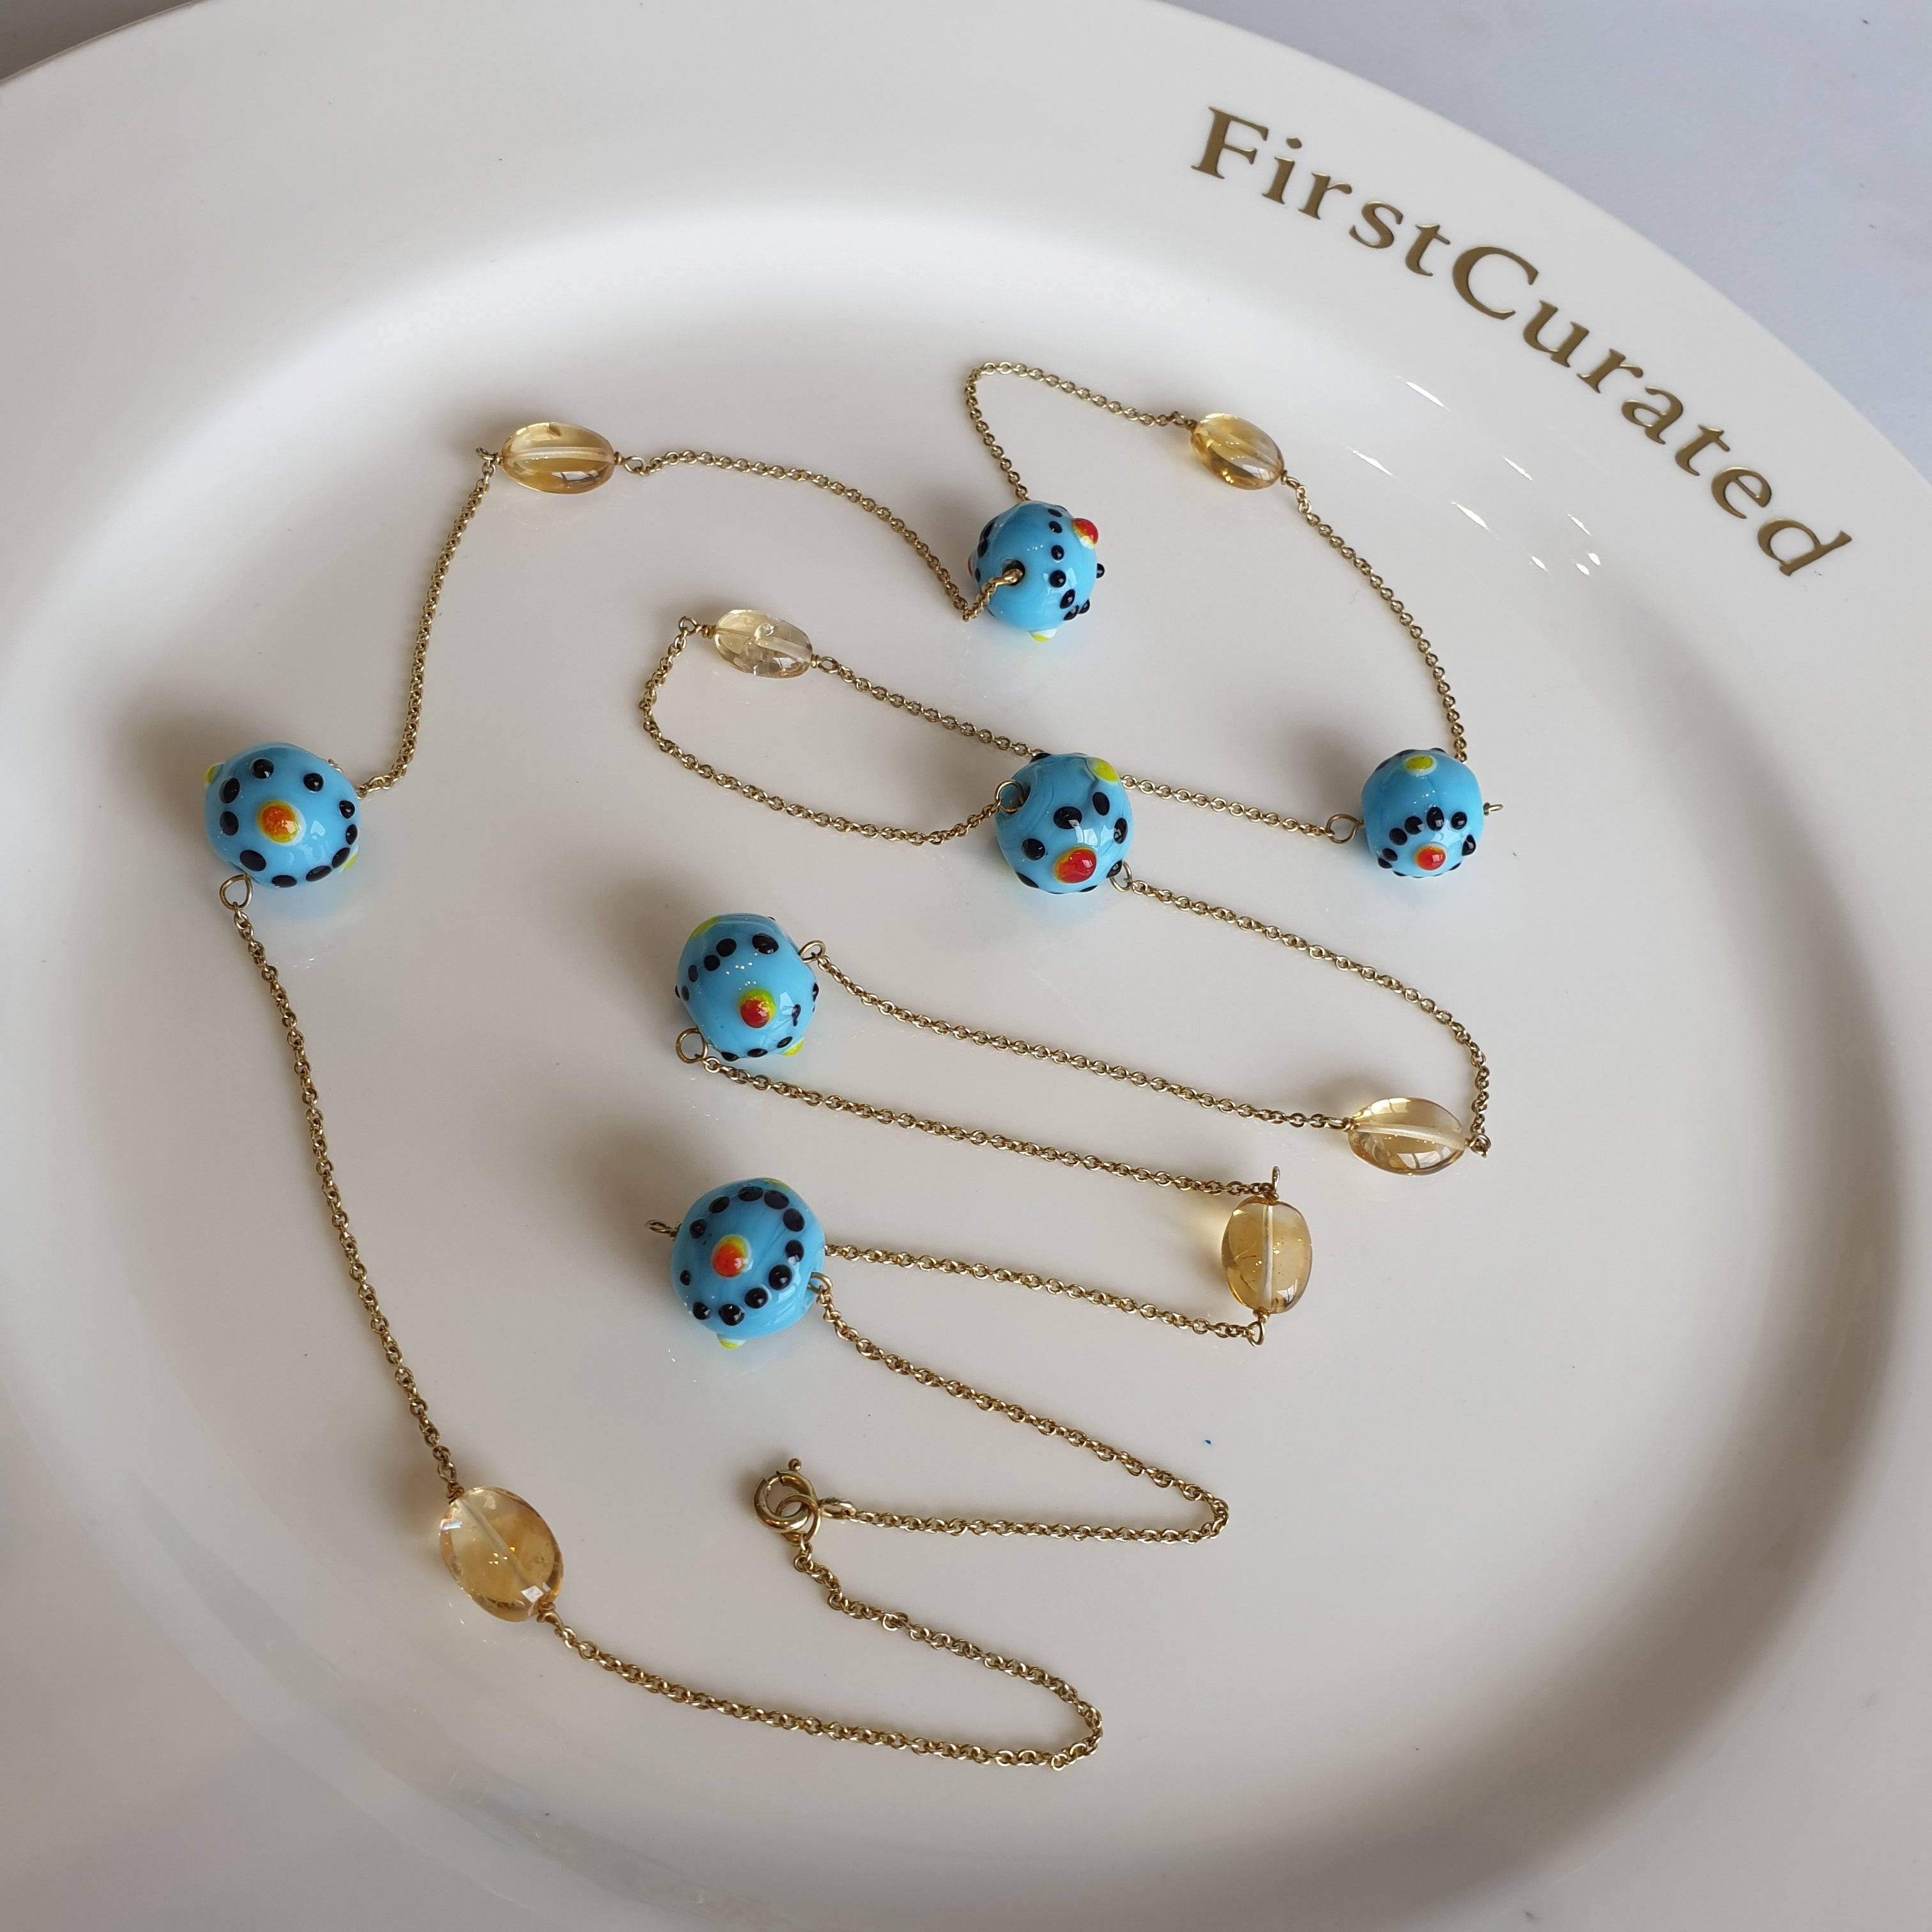 The Odette: Yellow Gold-Toned Necklace with Blue & Orange Glass Beads